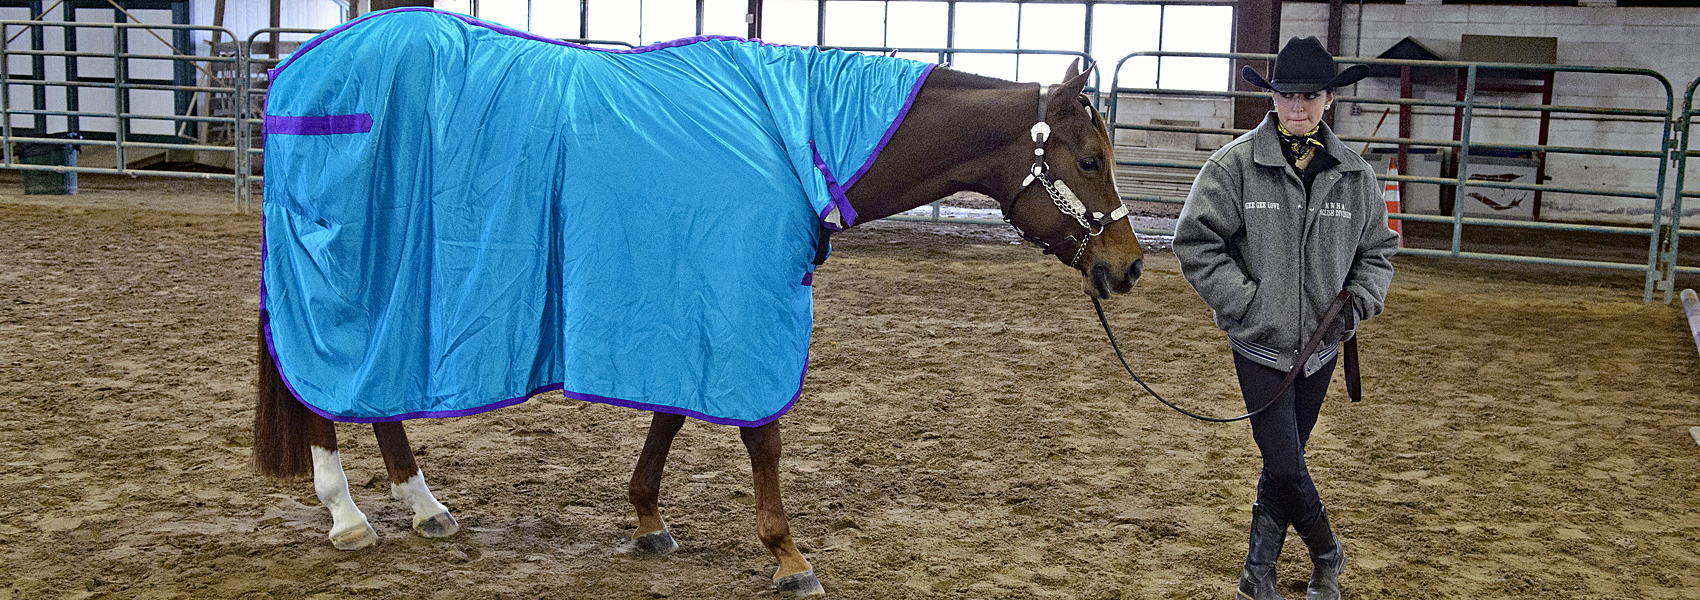 Rider stands with crossed legs next to her blanketed horse